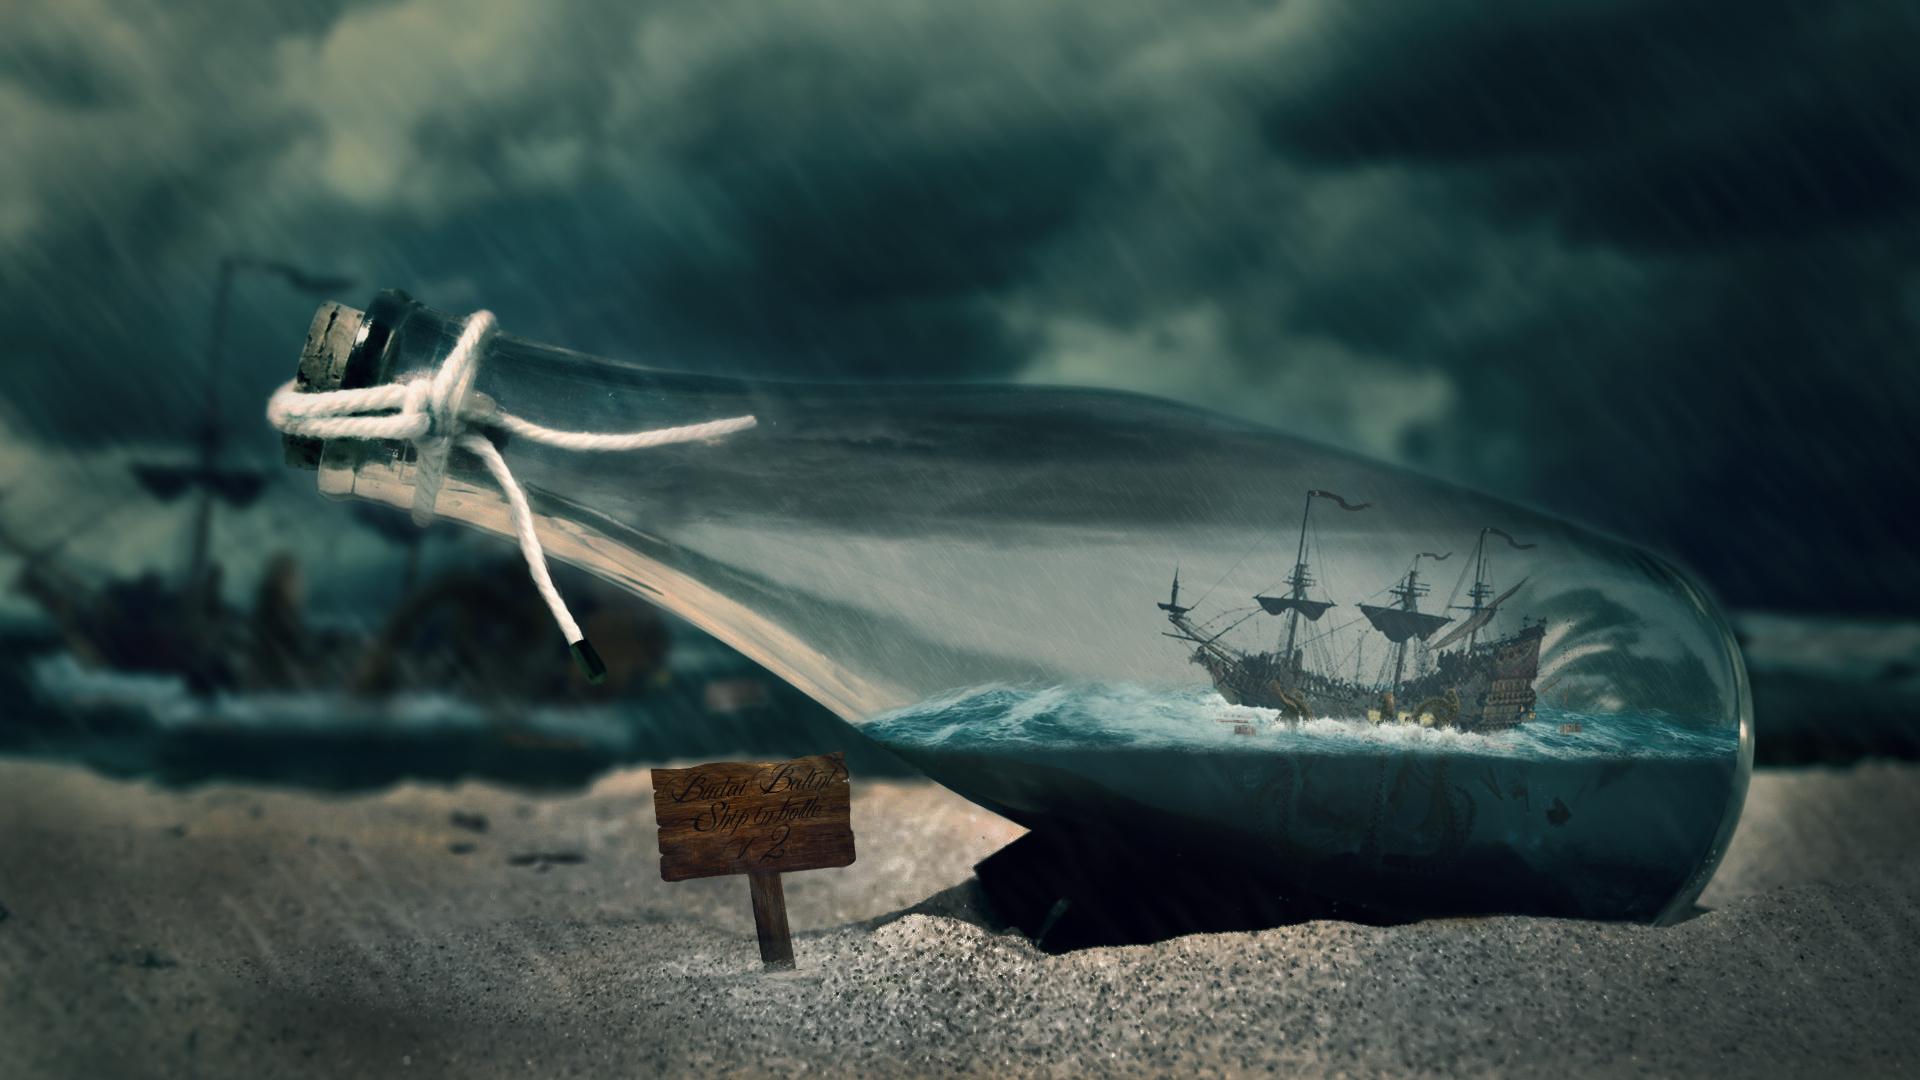 Ship in bottle V2 by balint4